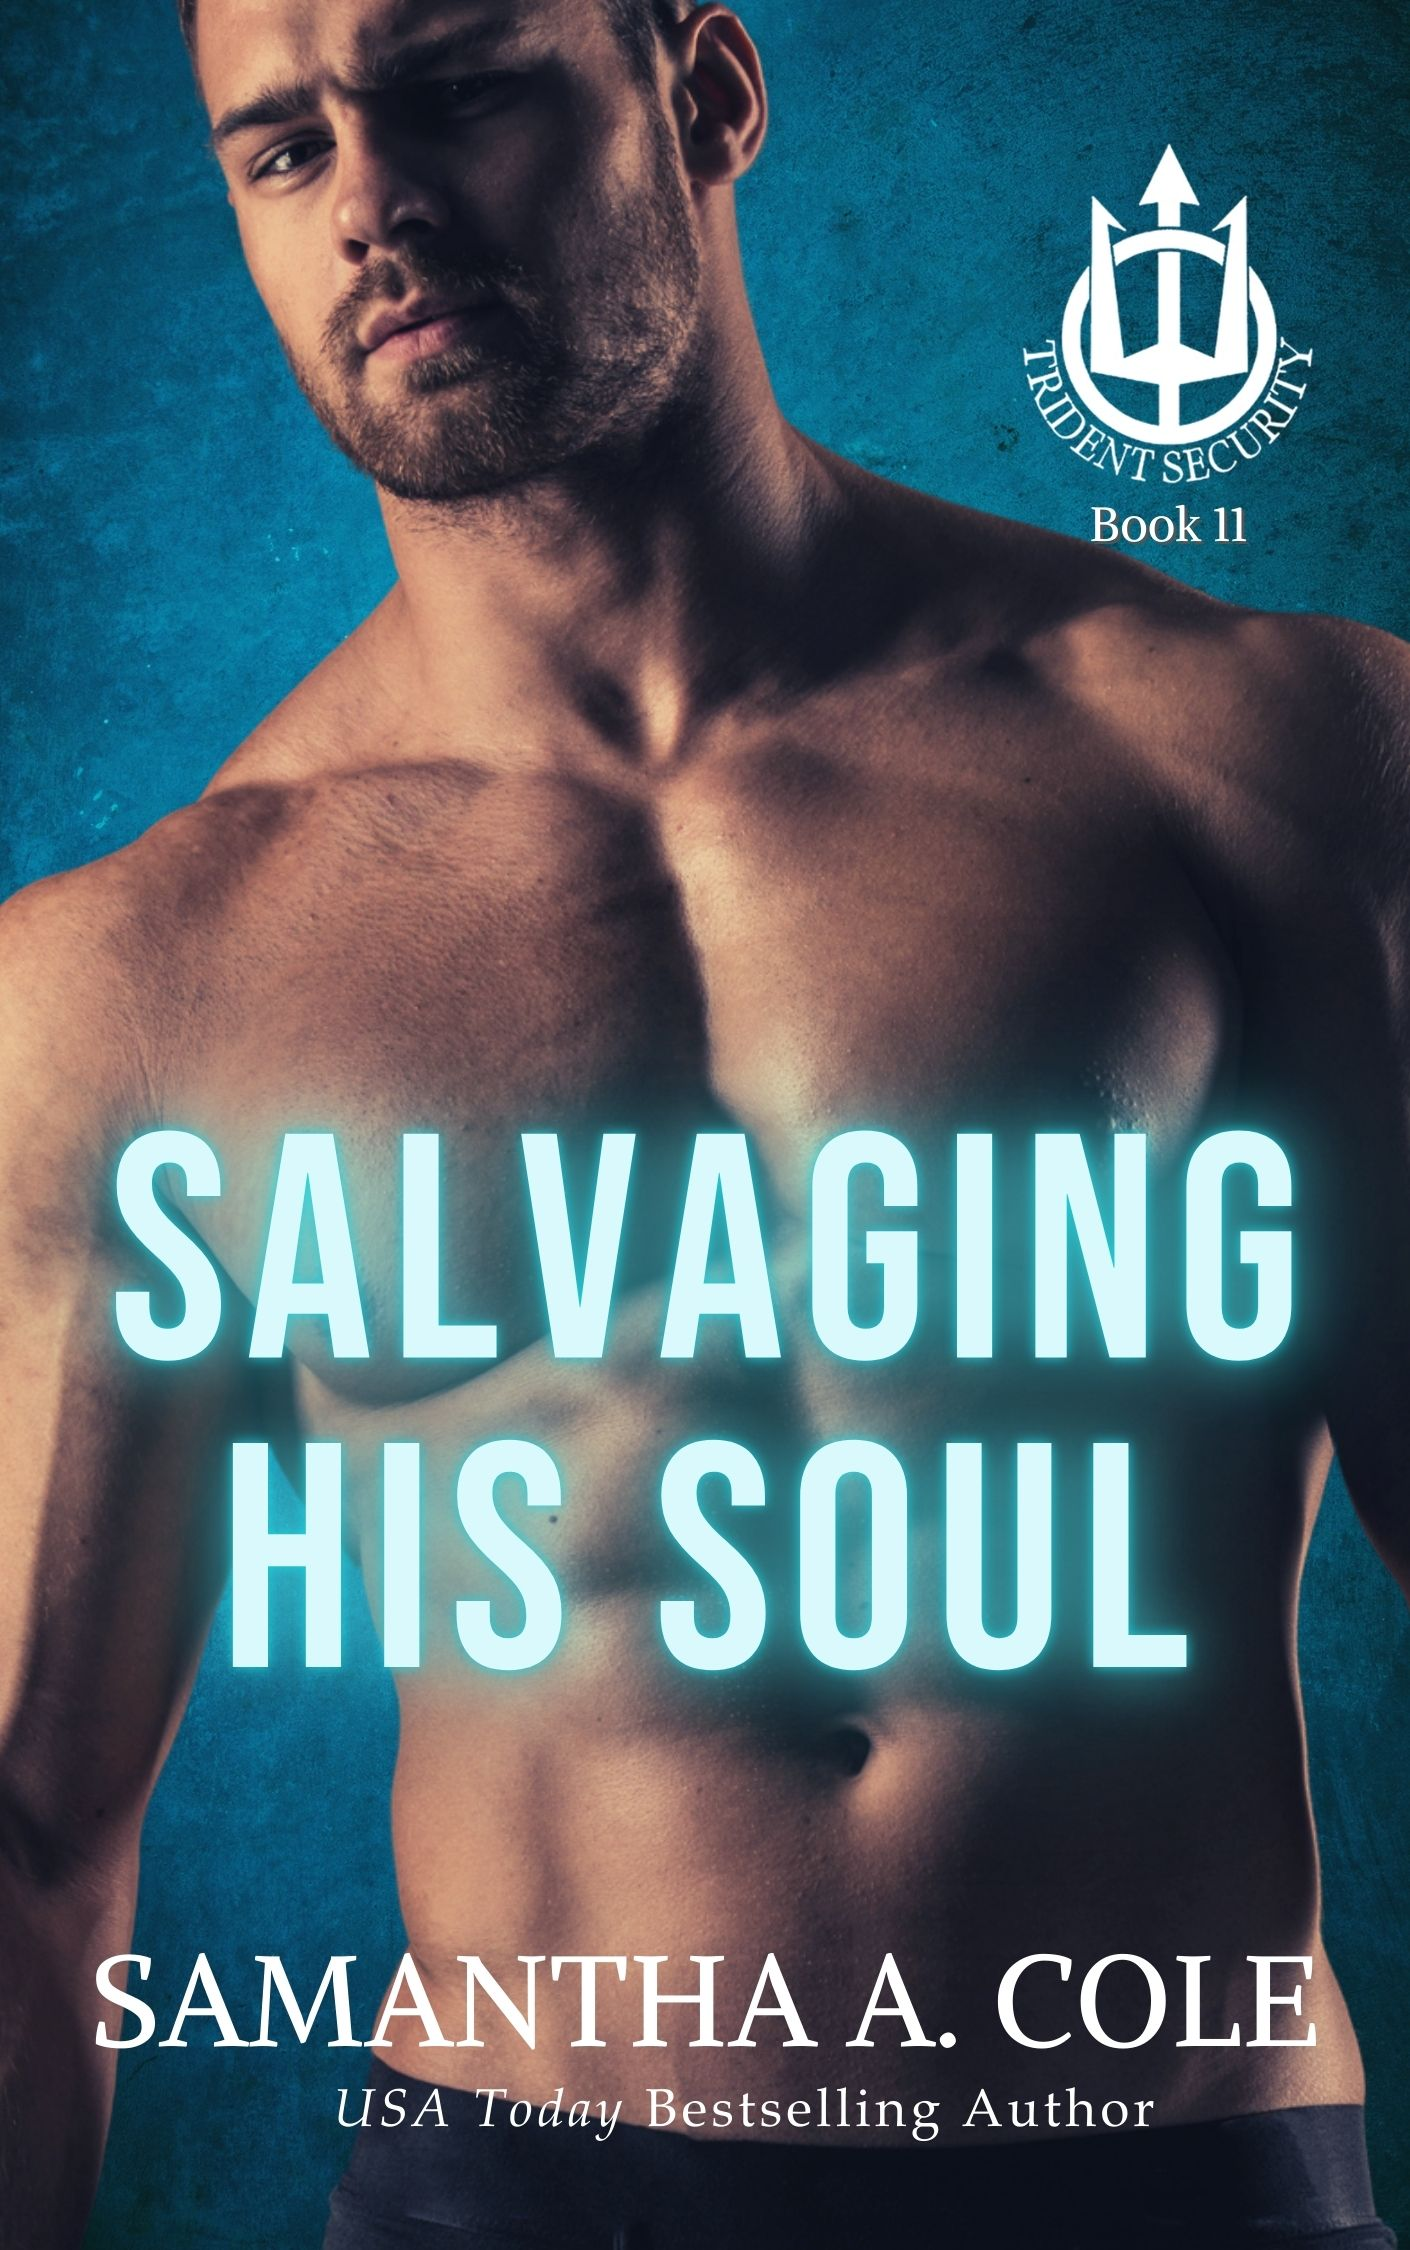 Salvaging His Soul